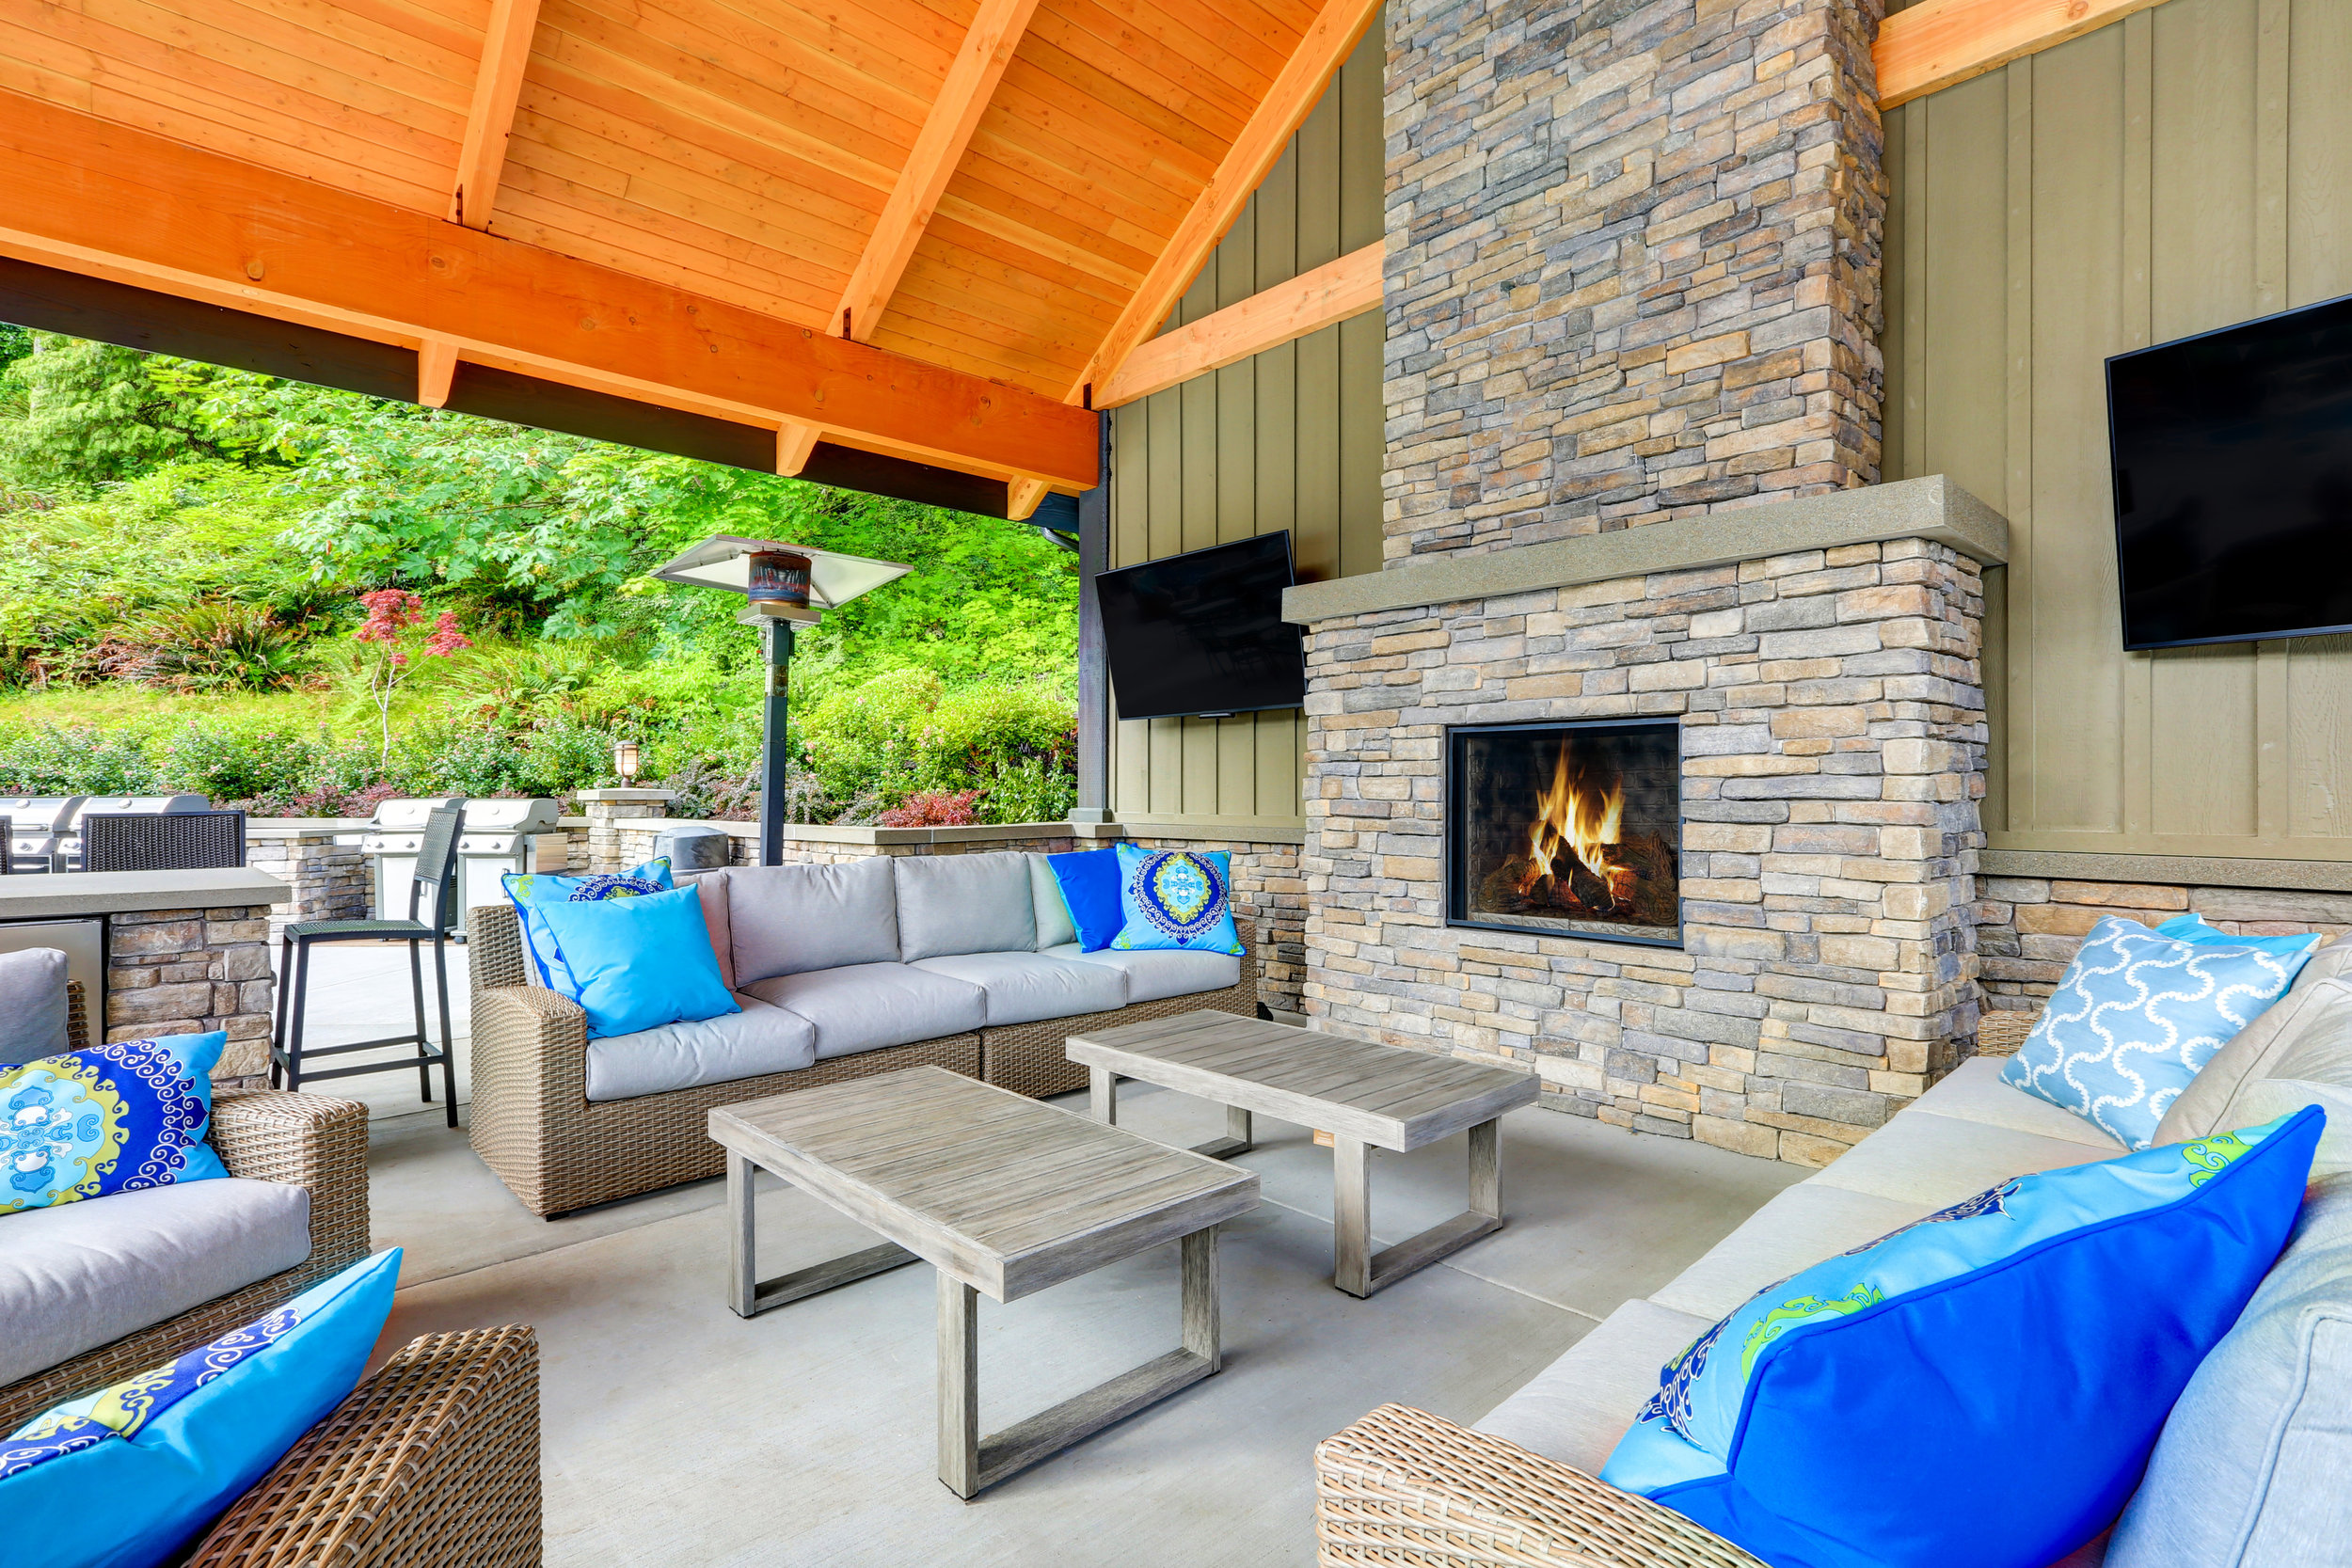 What You Need to Consider When Picking Materials for Your Oak Brook, IL, Outdoor Fireplace